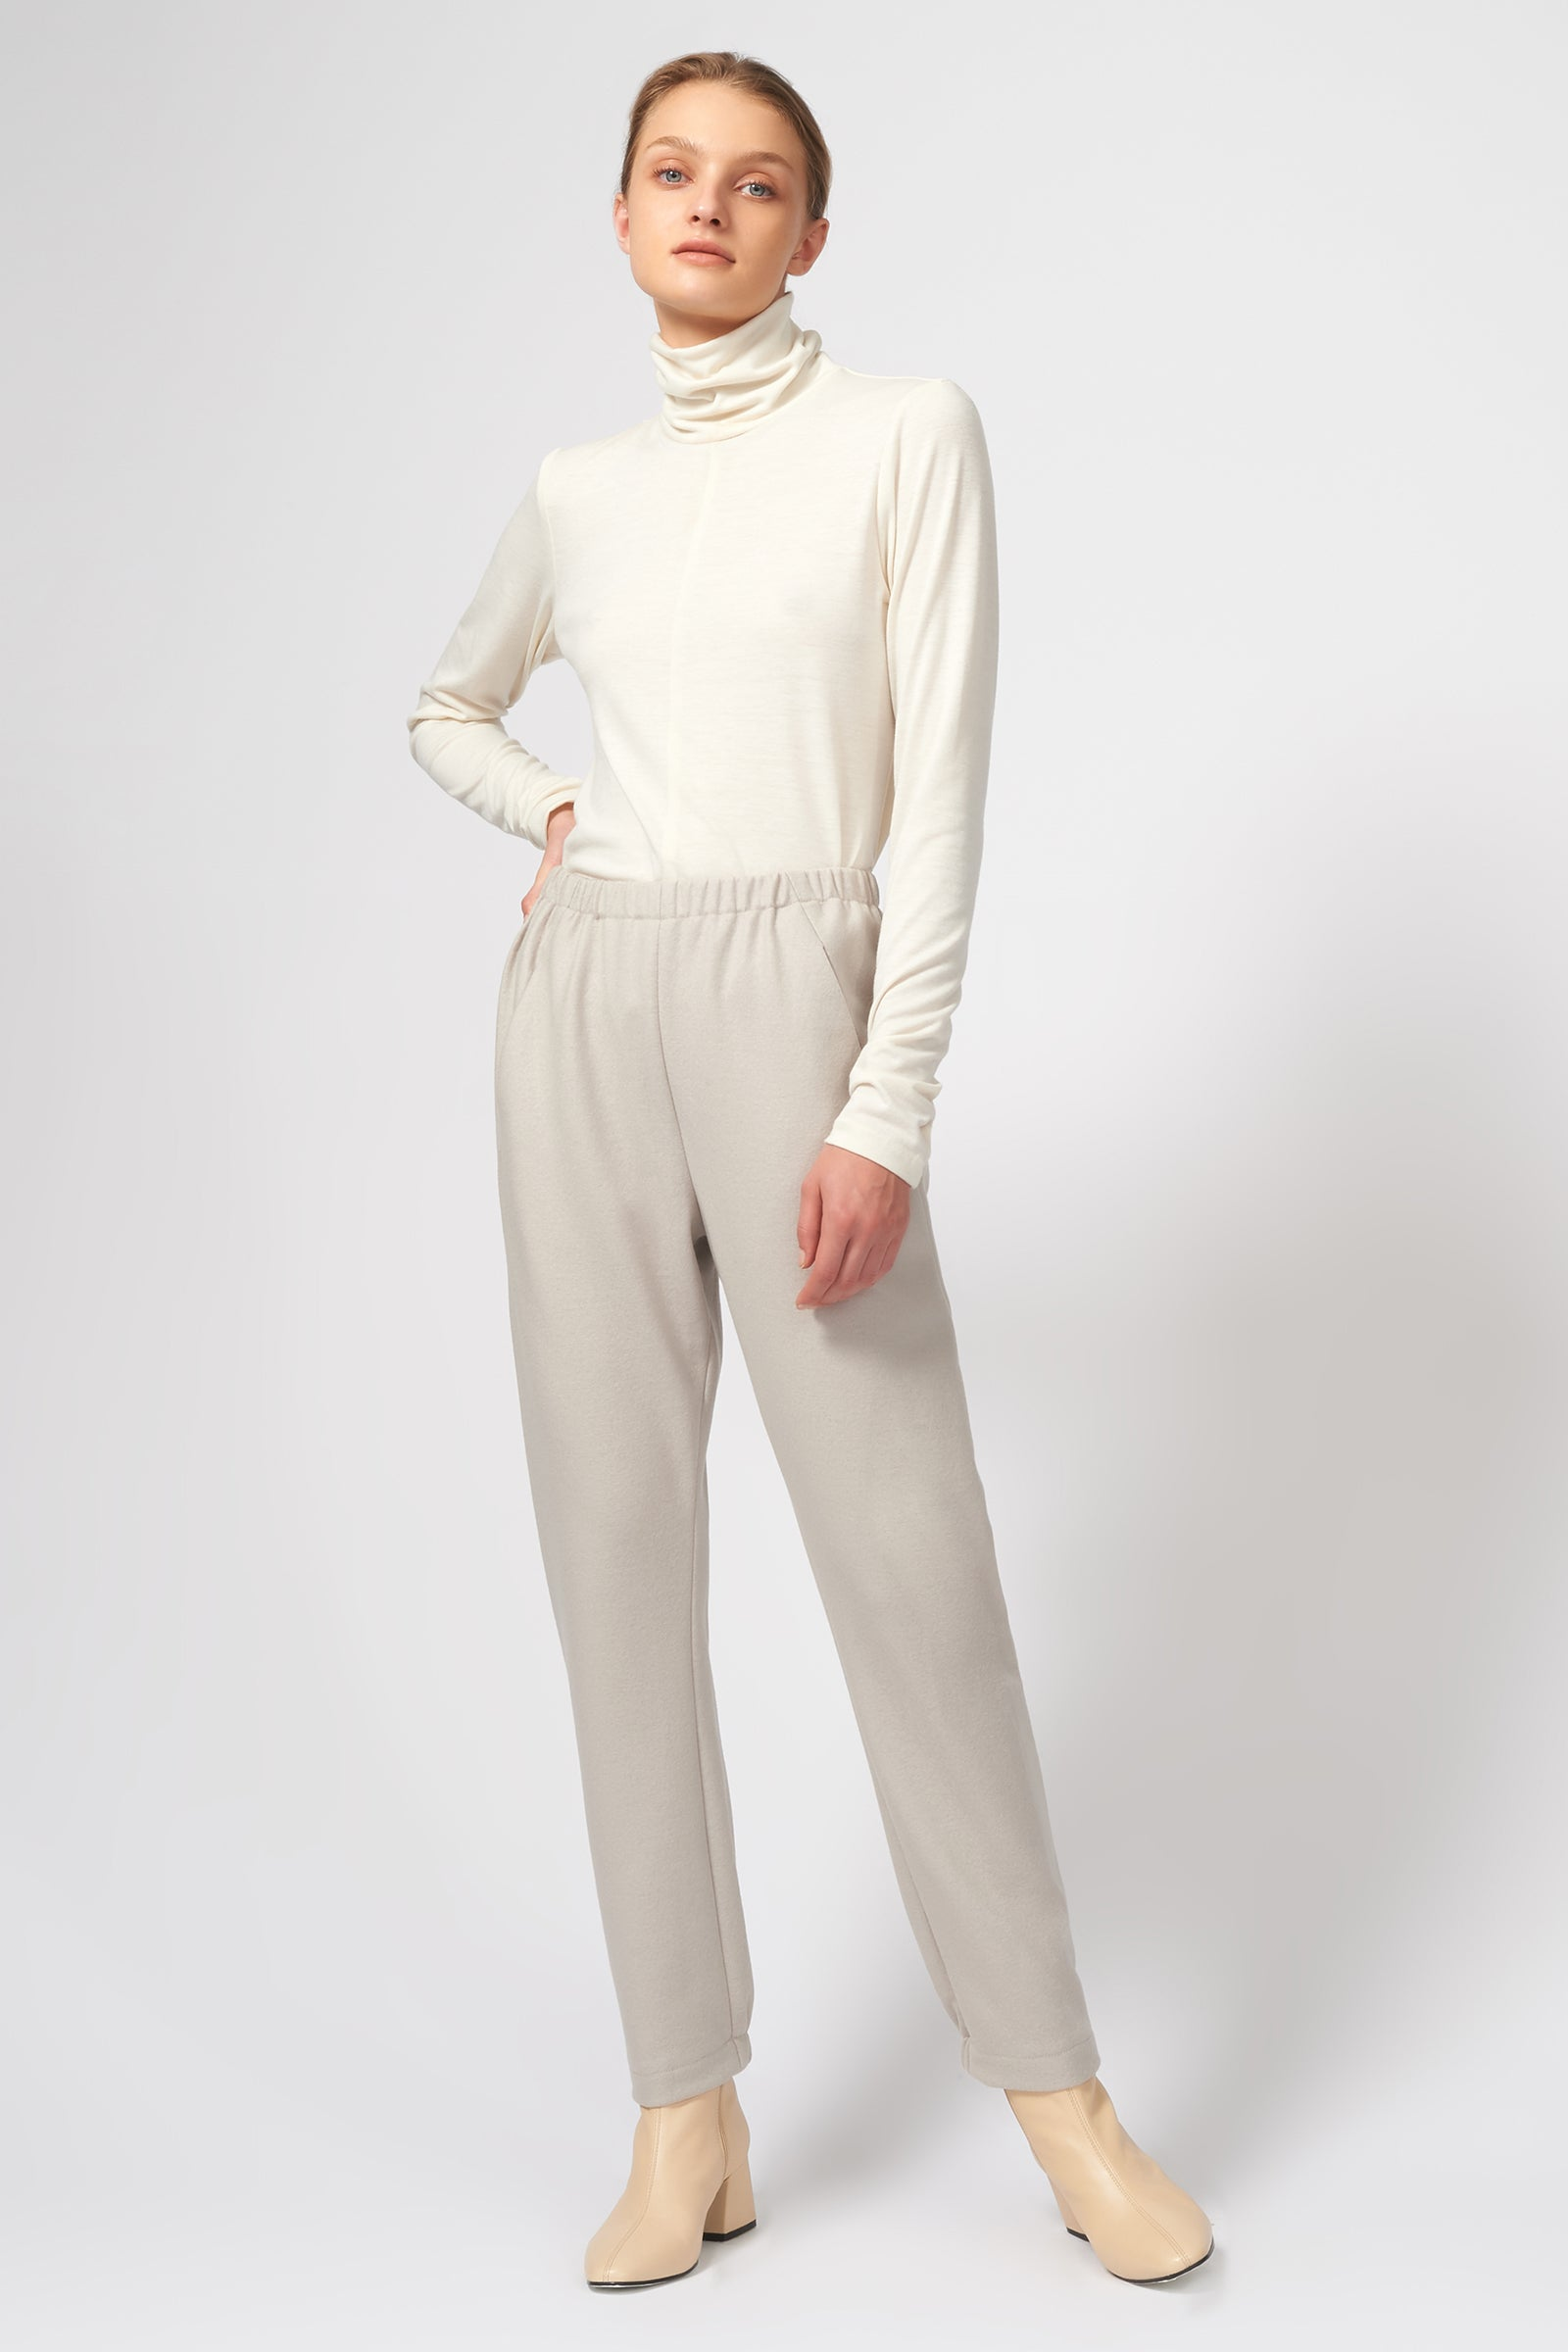 Kal Rieman Felted Jersey Angle Seam Jogger in Mink on Model Full Front View